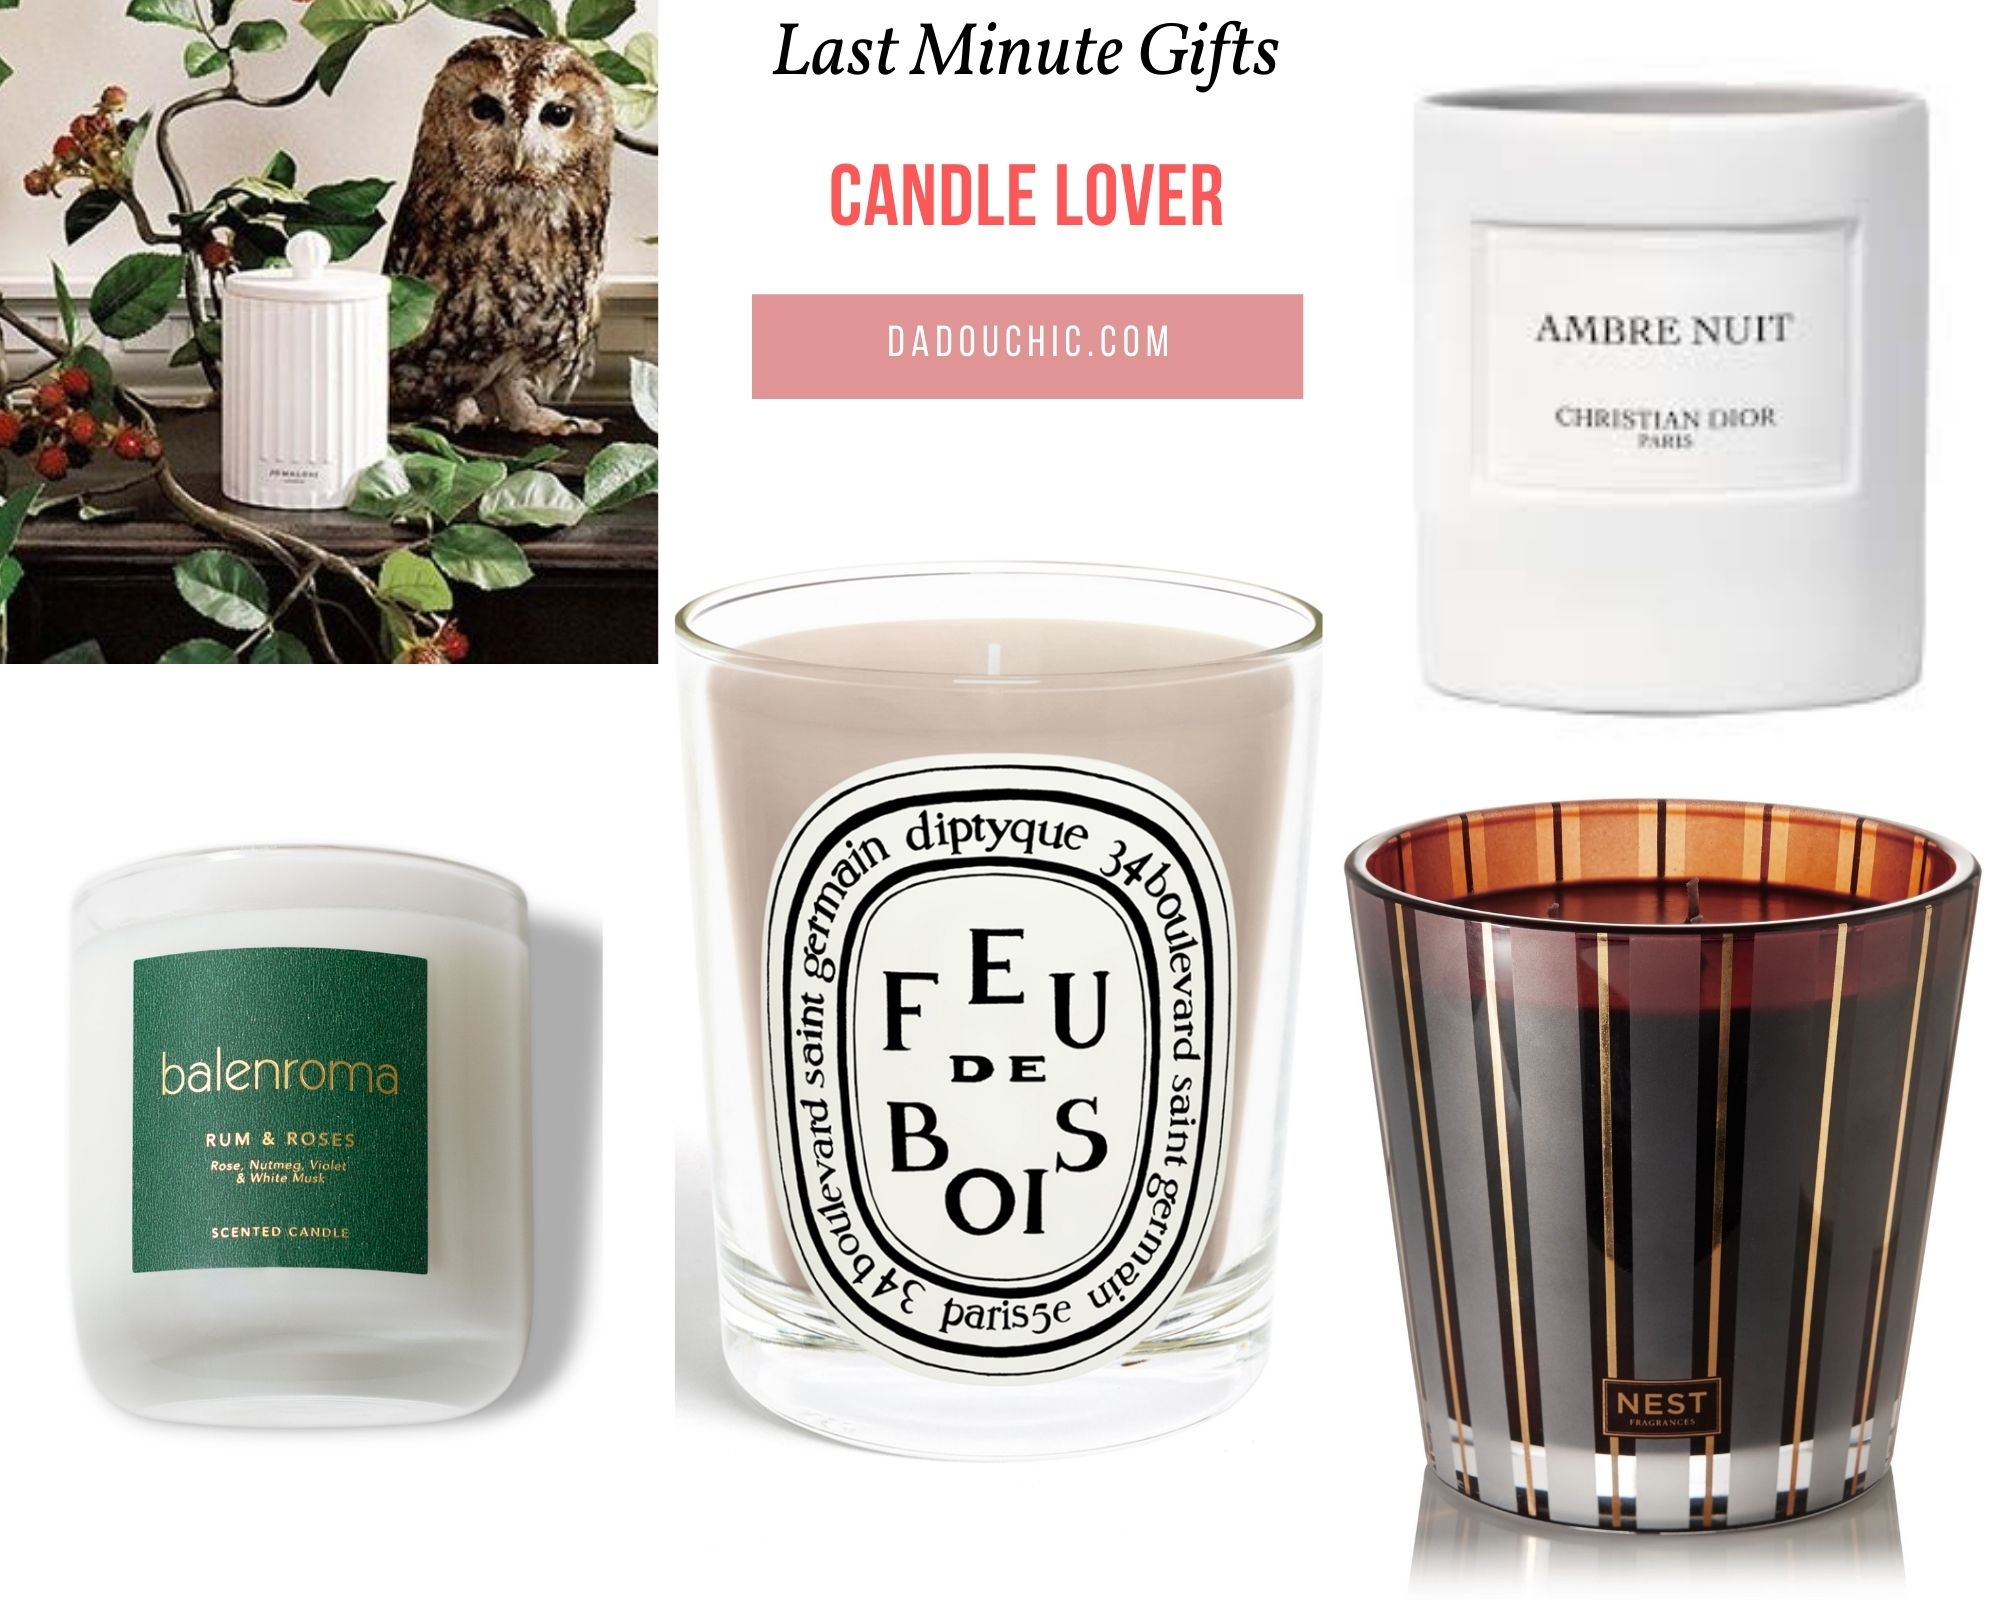 Gifts for the Candle Lover